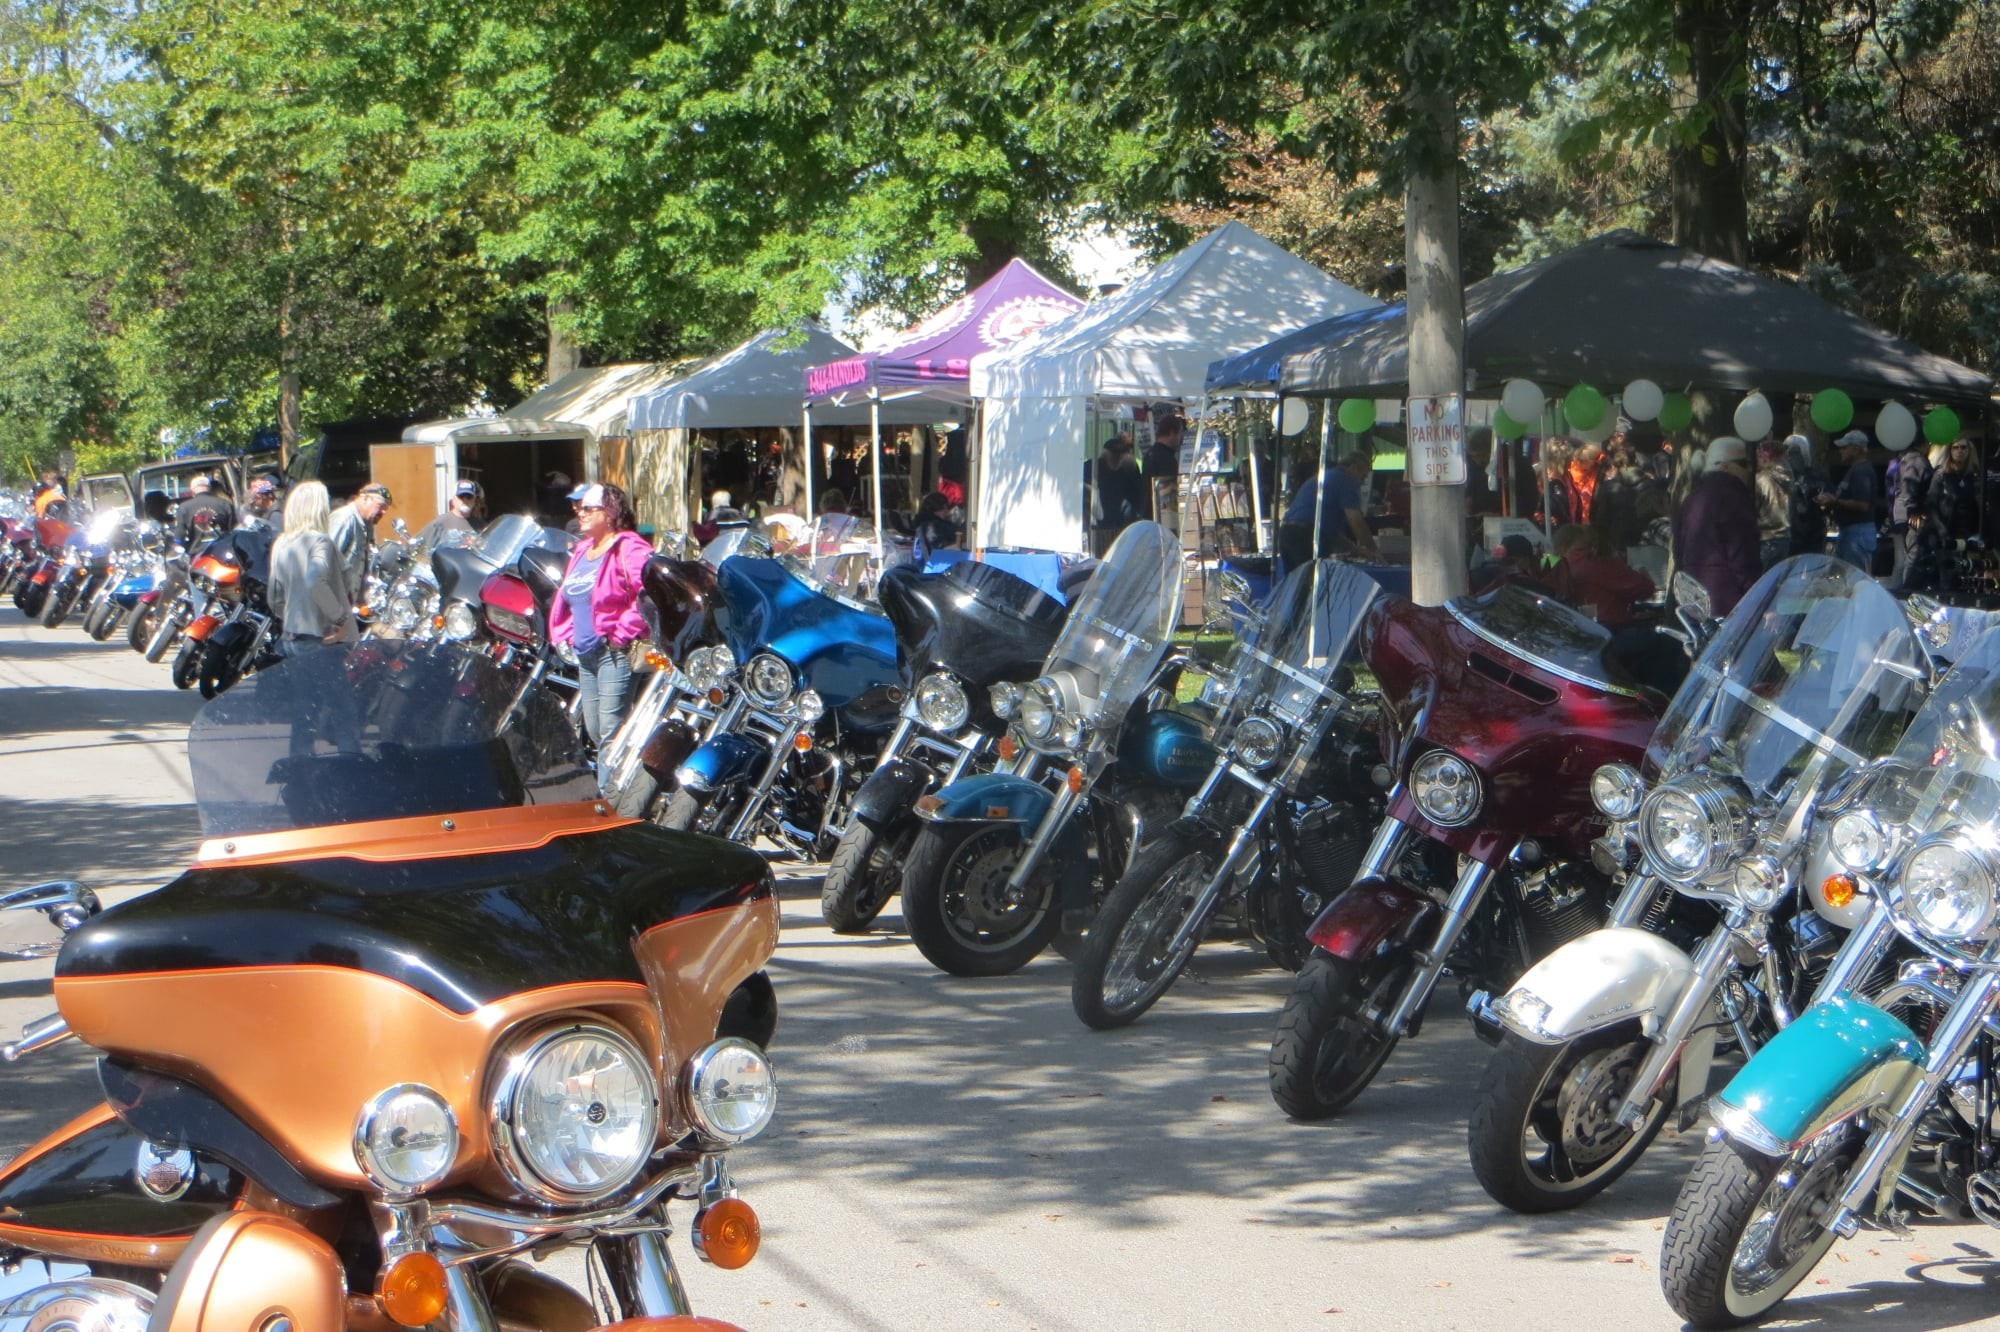 The 24th Annual Grub `n Suds Motorcycle Rally, set for Sept. 11 at Elmore's Depot Park, will feature a motorcycle run, bike judging, vendors, live music, food, beer and more. This year's event will also feature a tribute to 9/11. (Submitted photo)